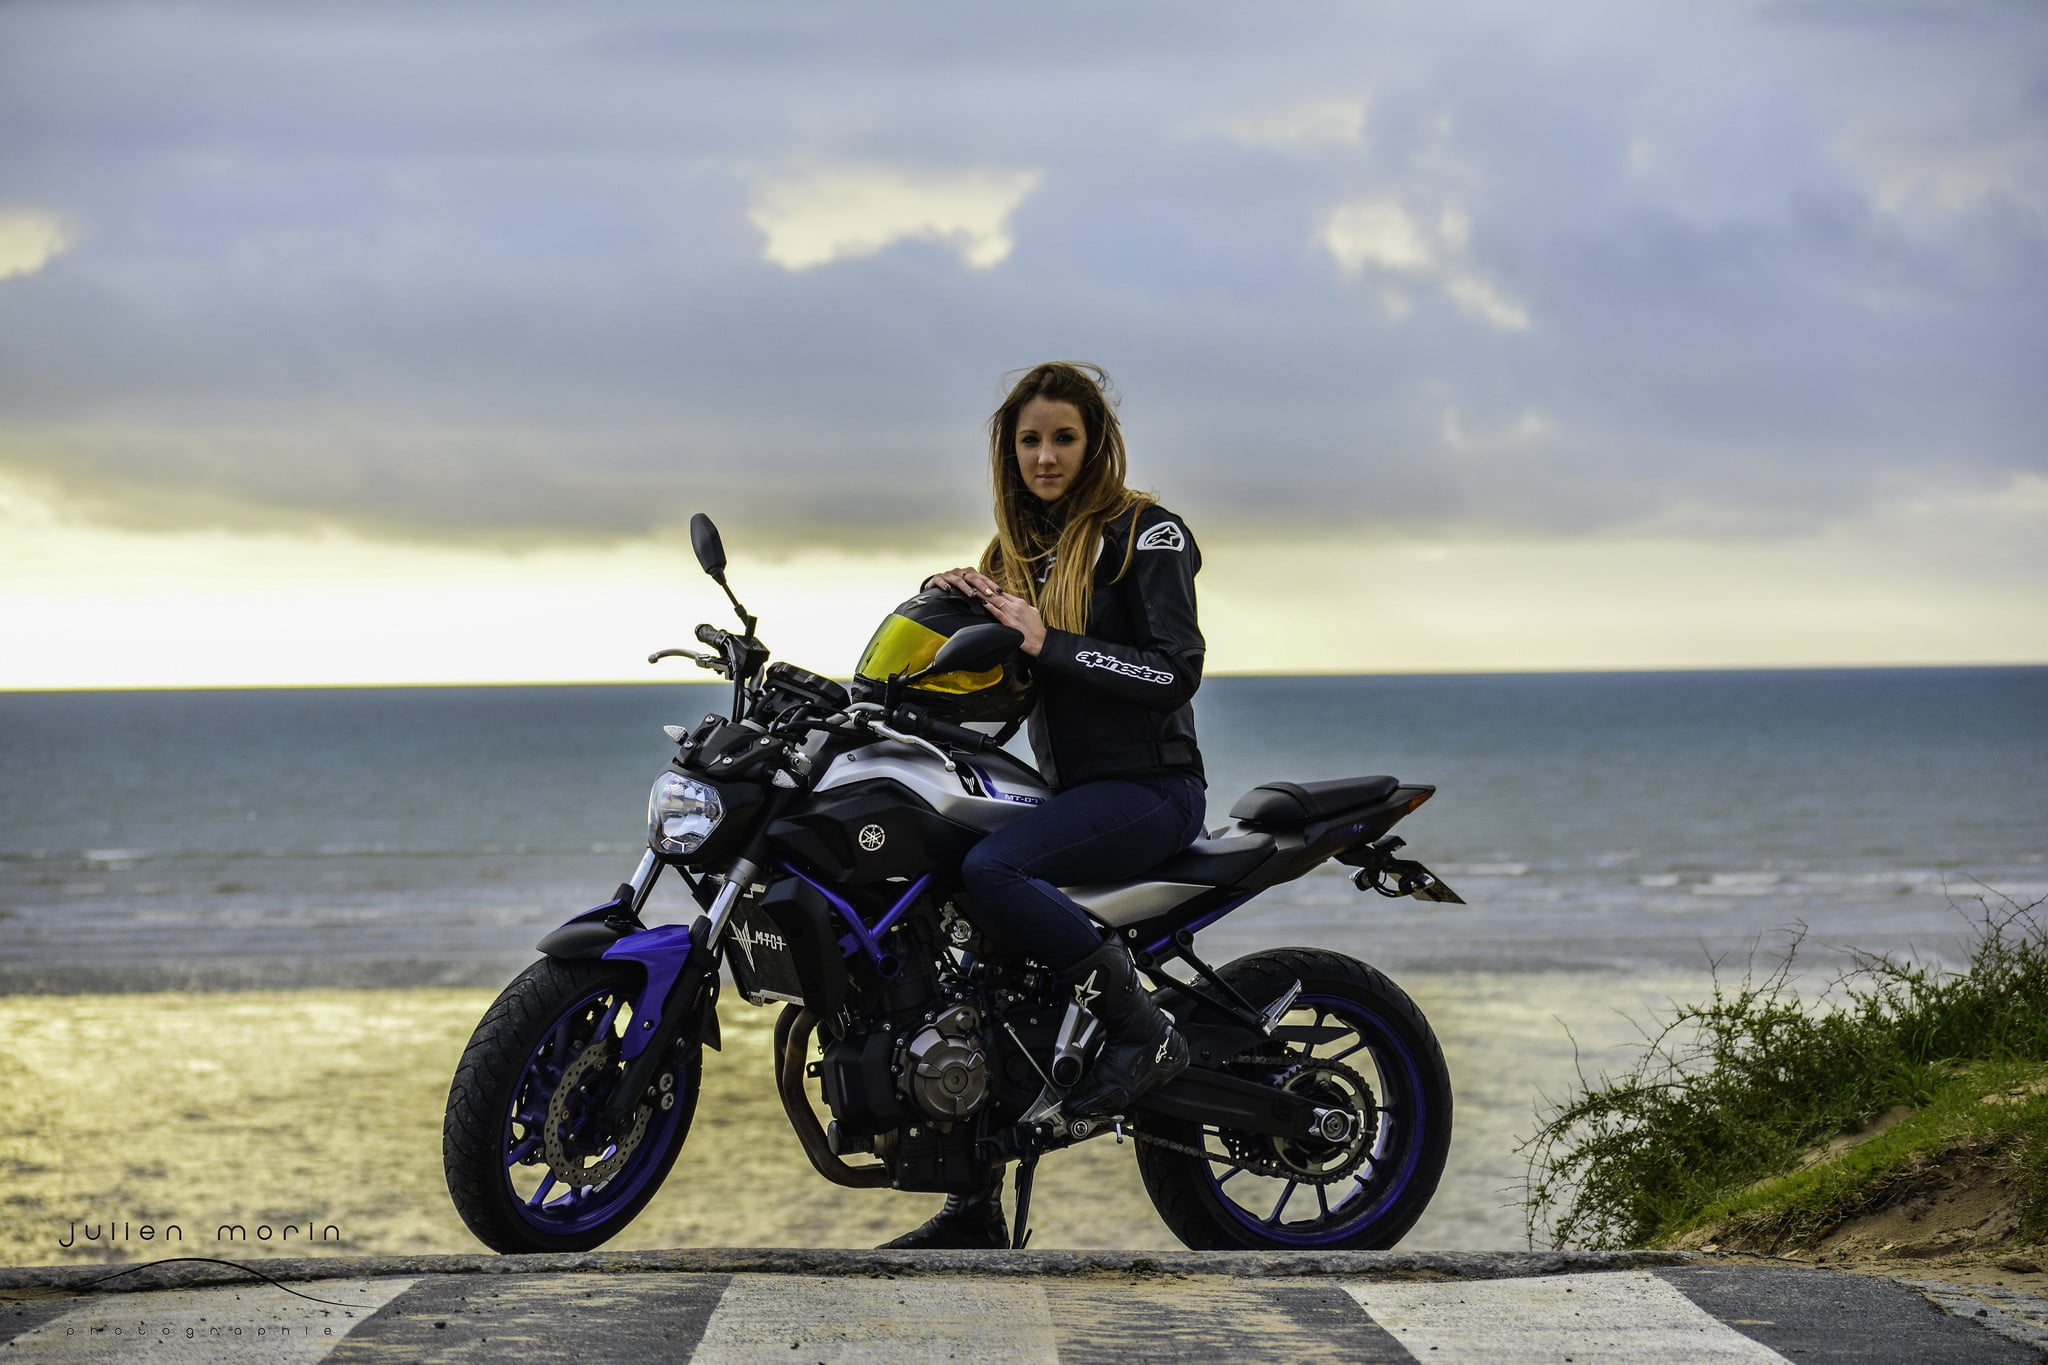 Yamaha Girl Wallpaper Hd 20 Yamaha Mt 07 Wallpapers Hd Self Collection